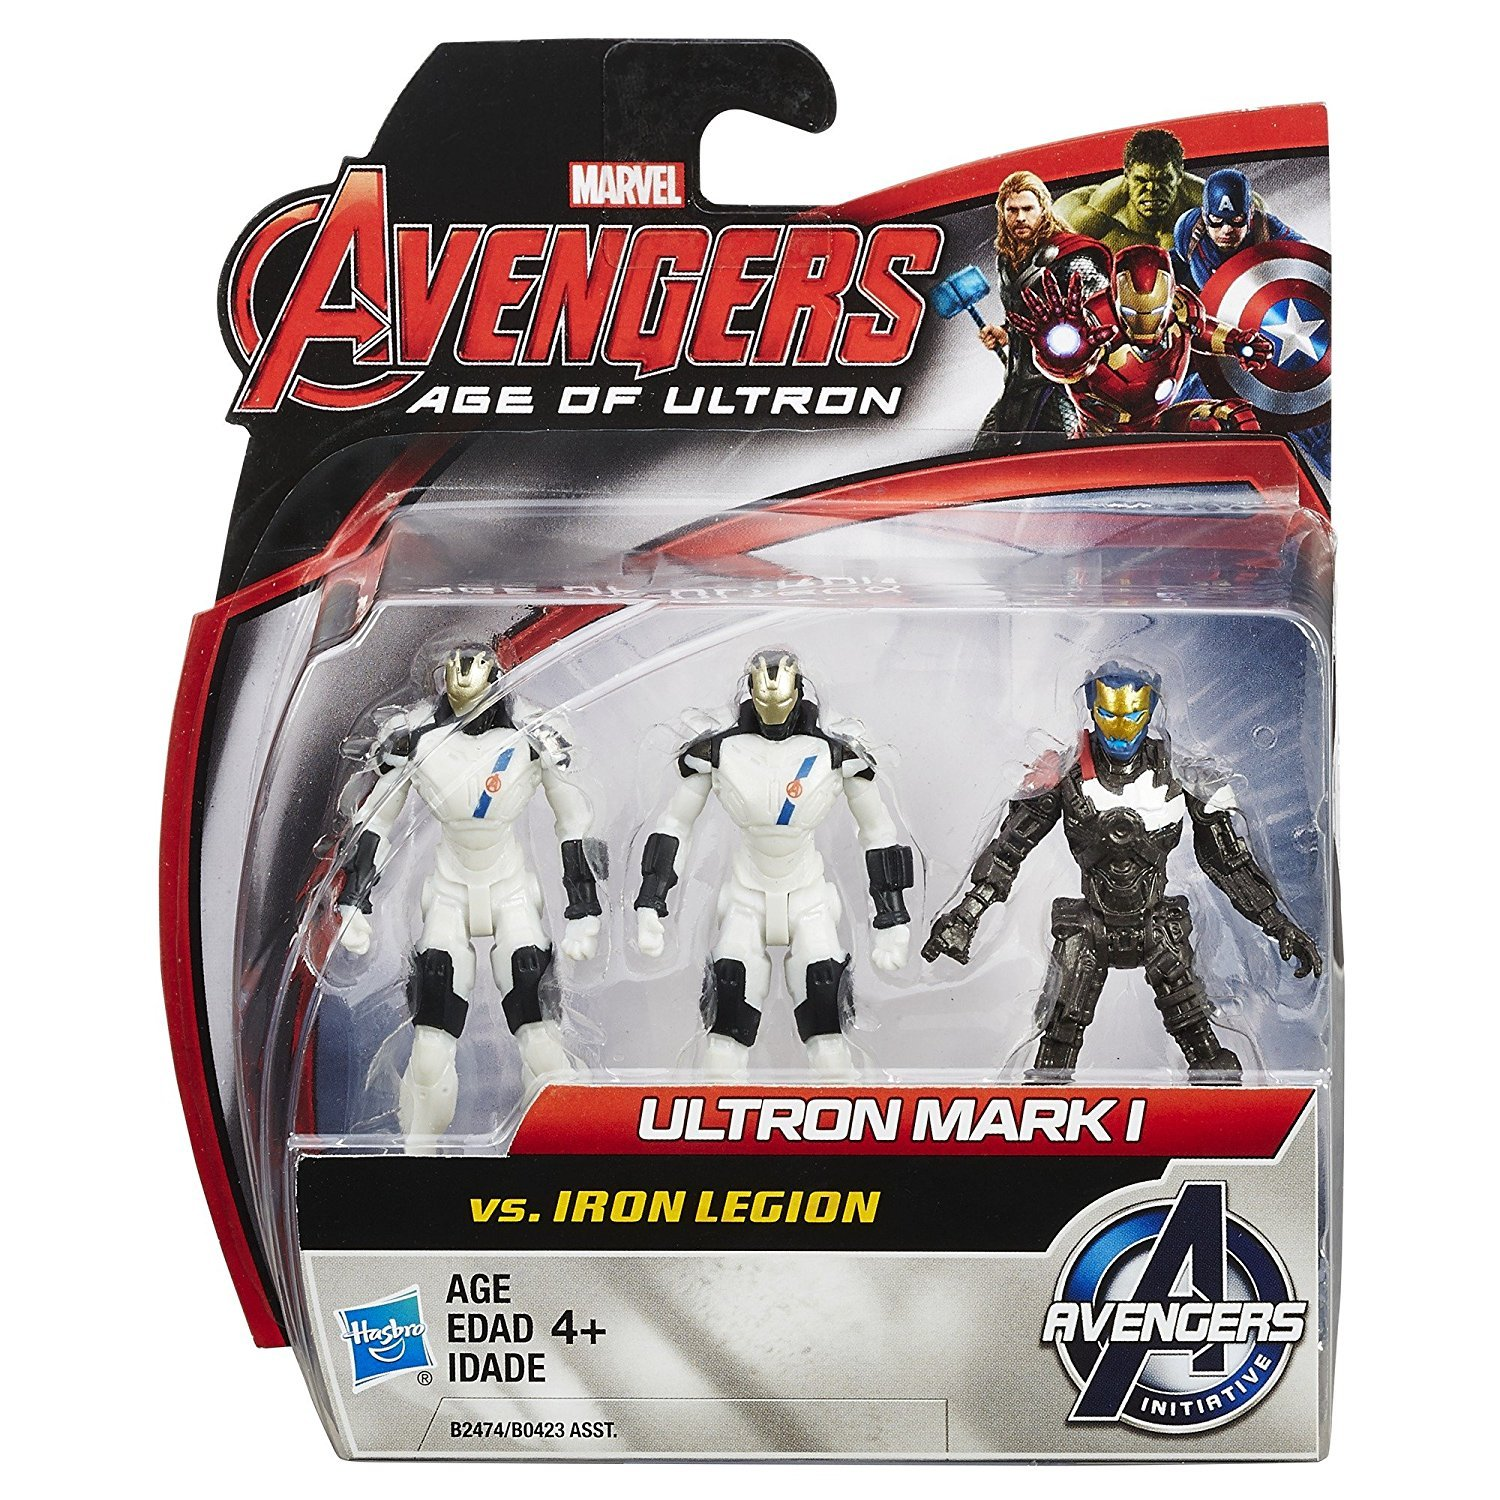 Marvel Avengers Age of Ultron Iron Legion vs. Ultron Mark 1